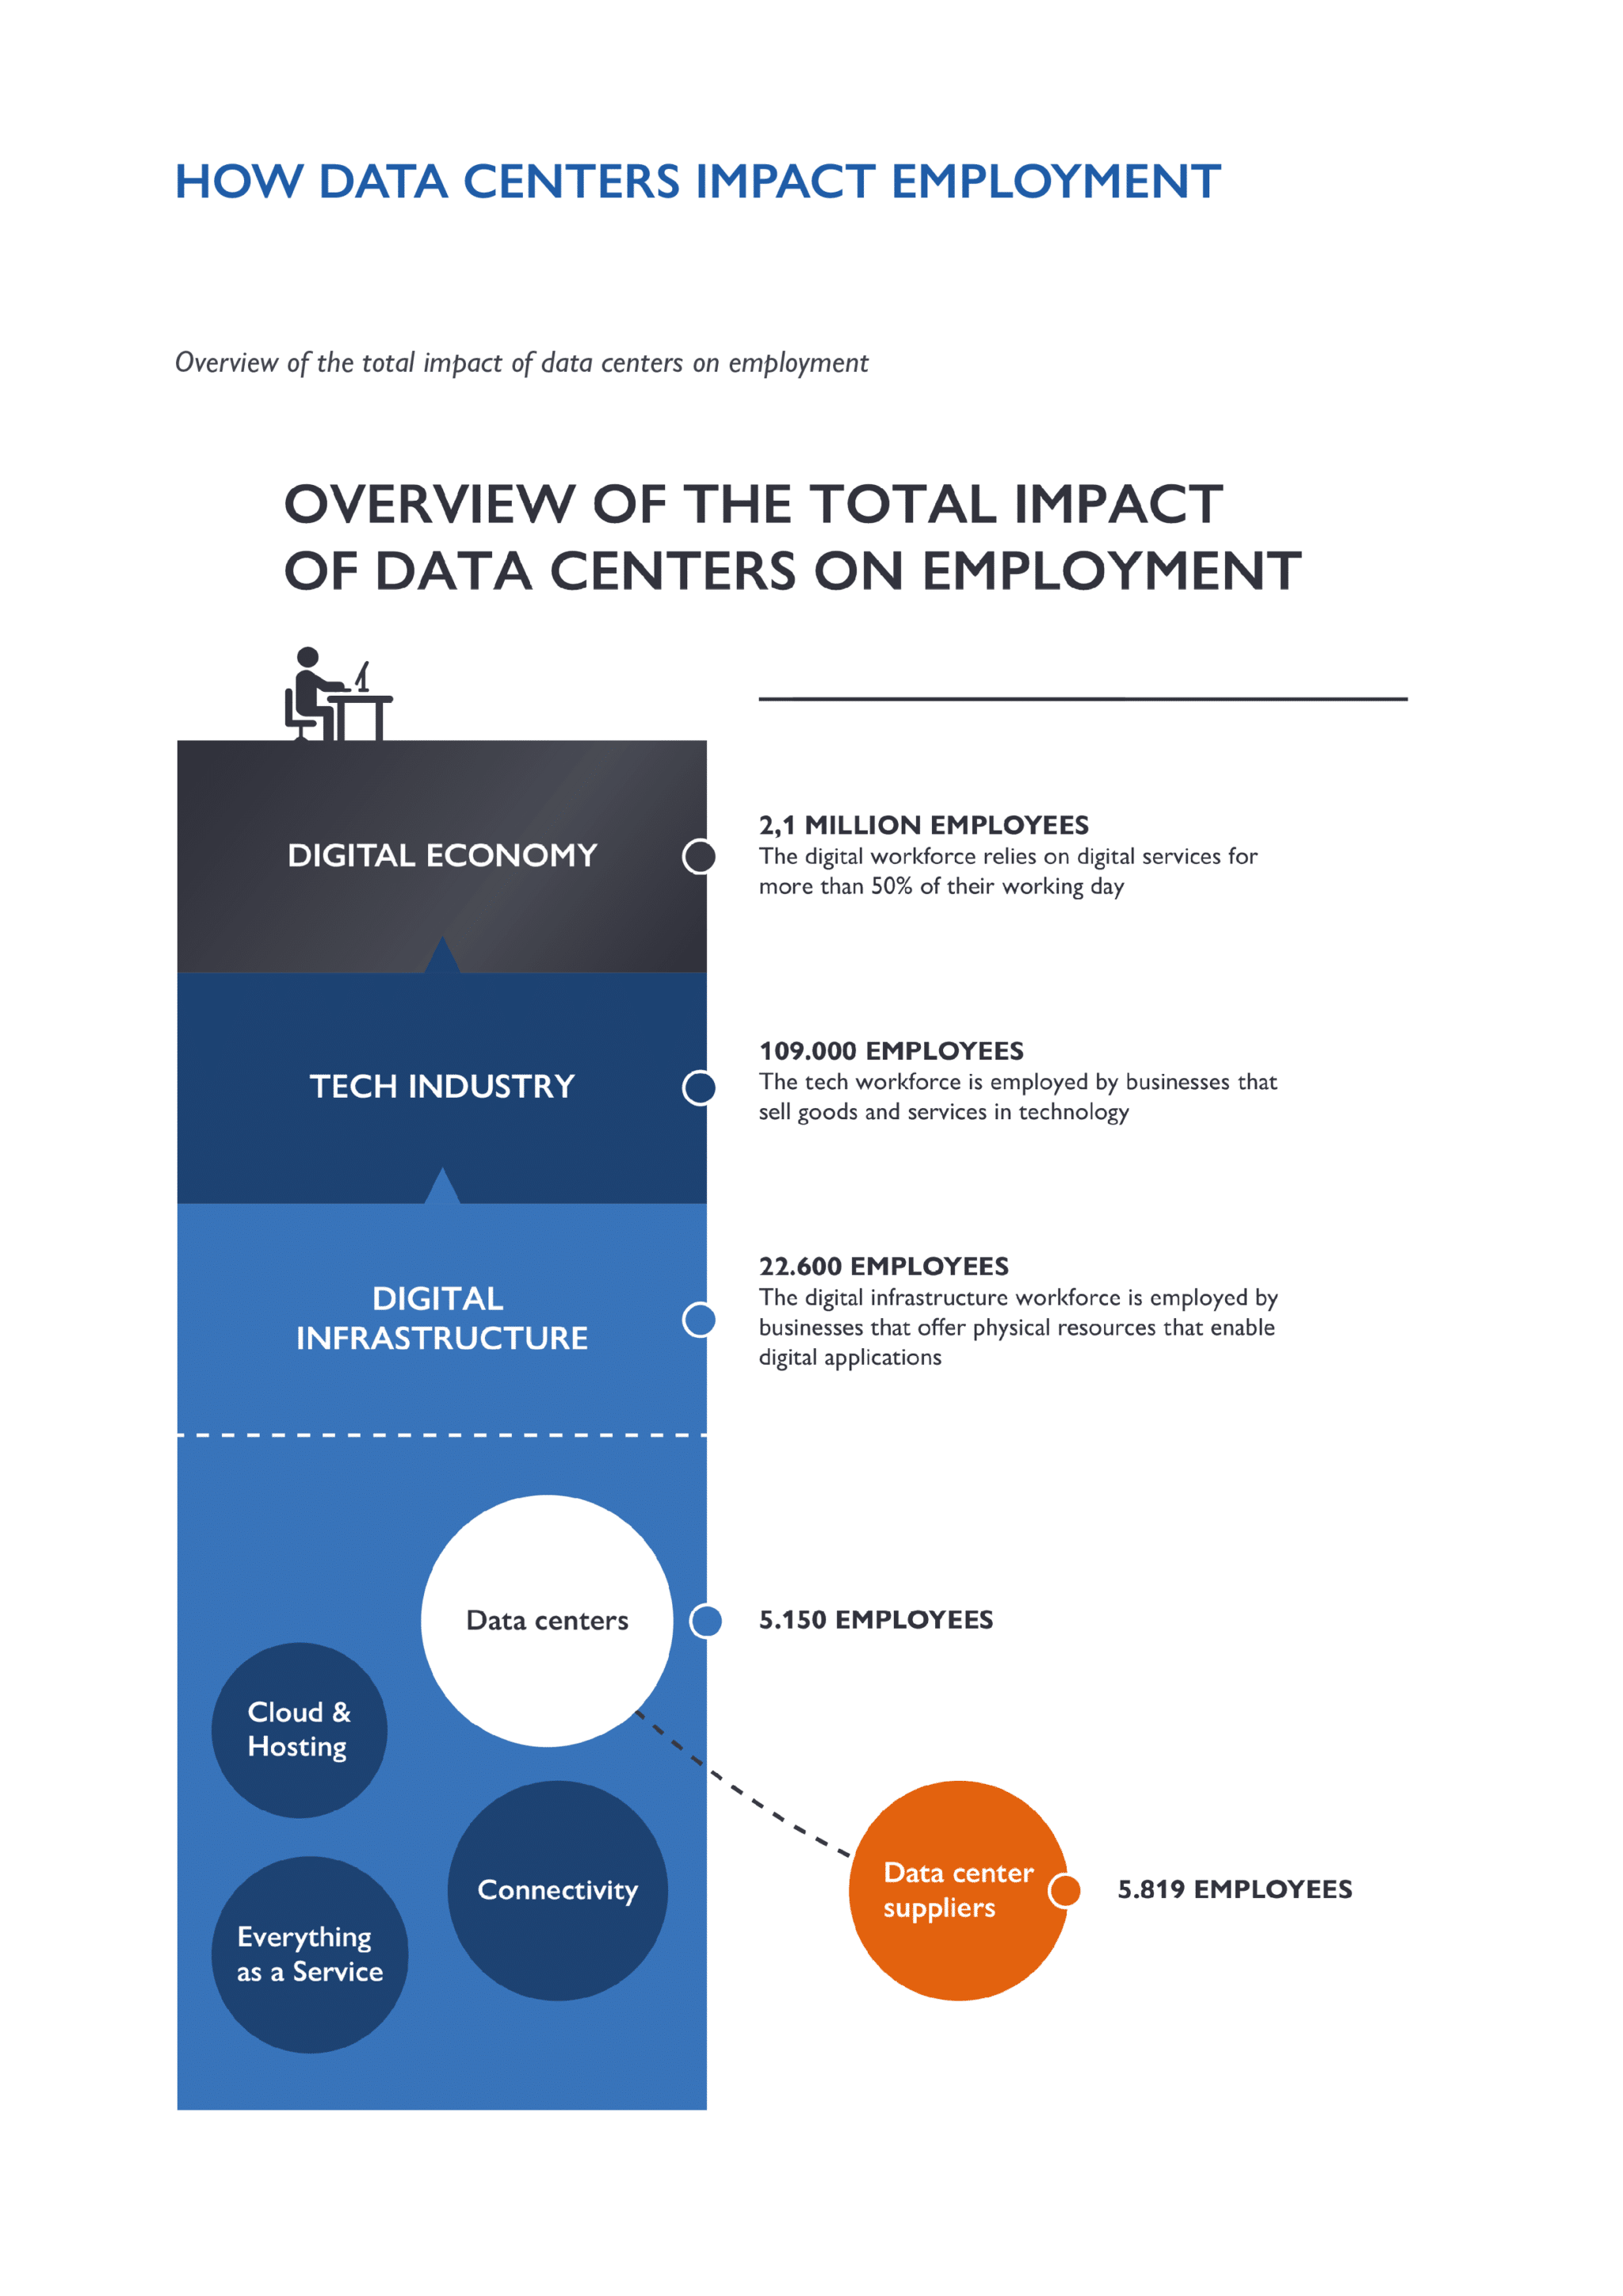 Total Impact of Data Centers on Employment